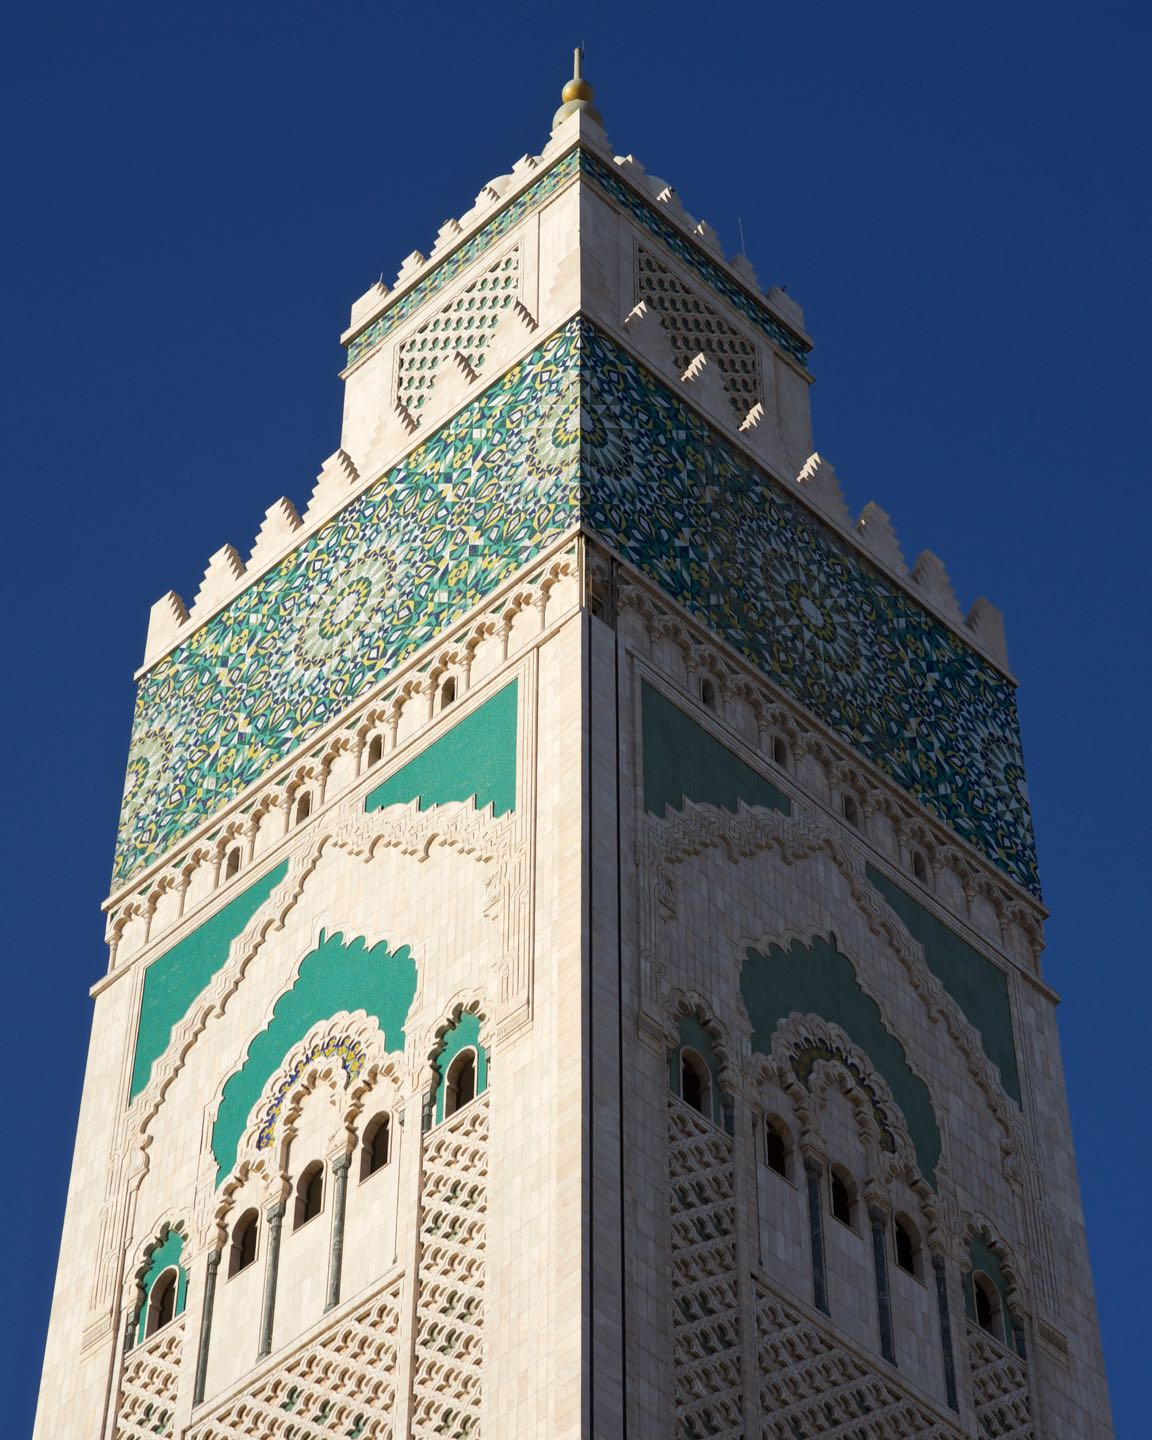 Fine details on the tower of the Hassan II Mosque of Casablanca.